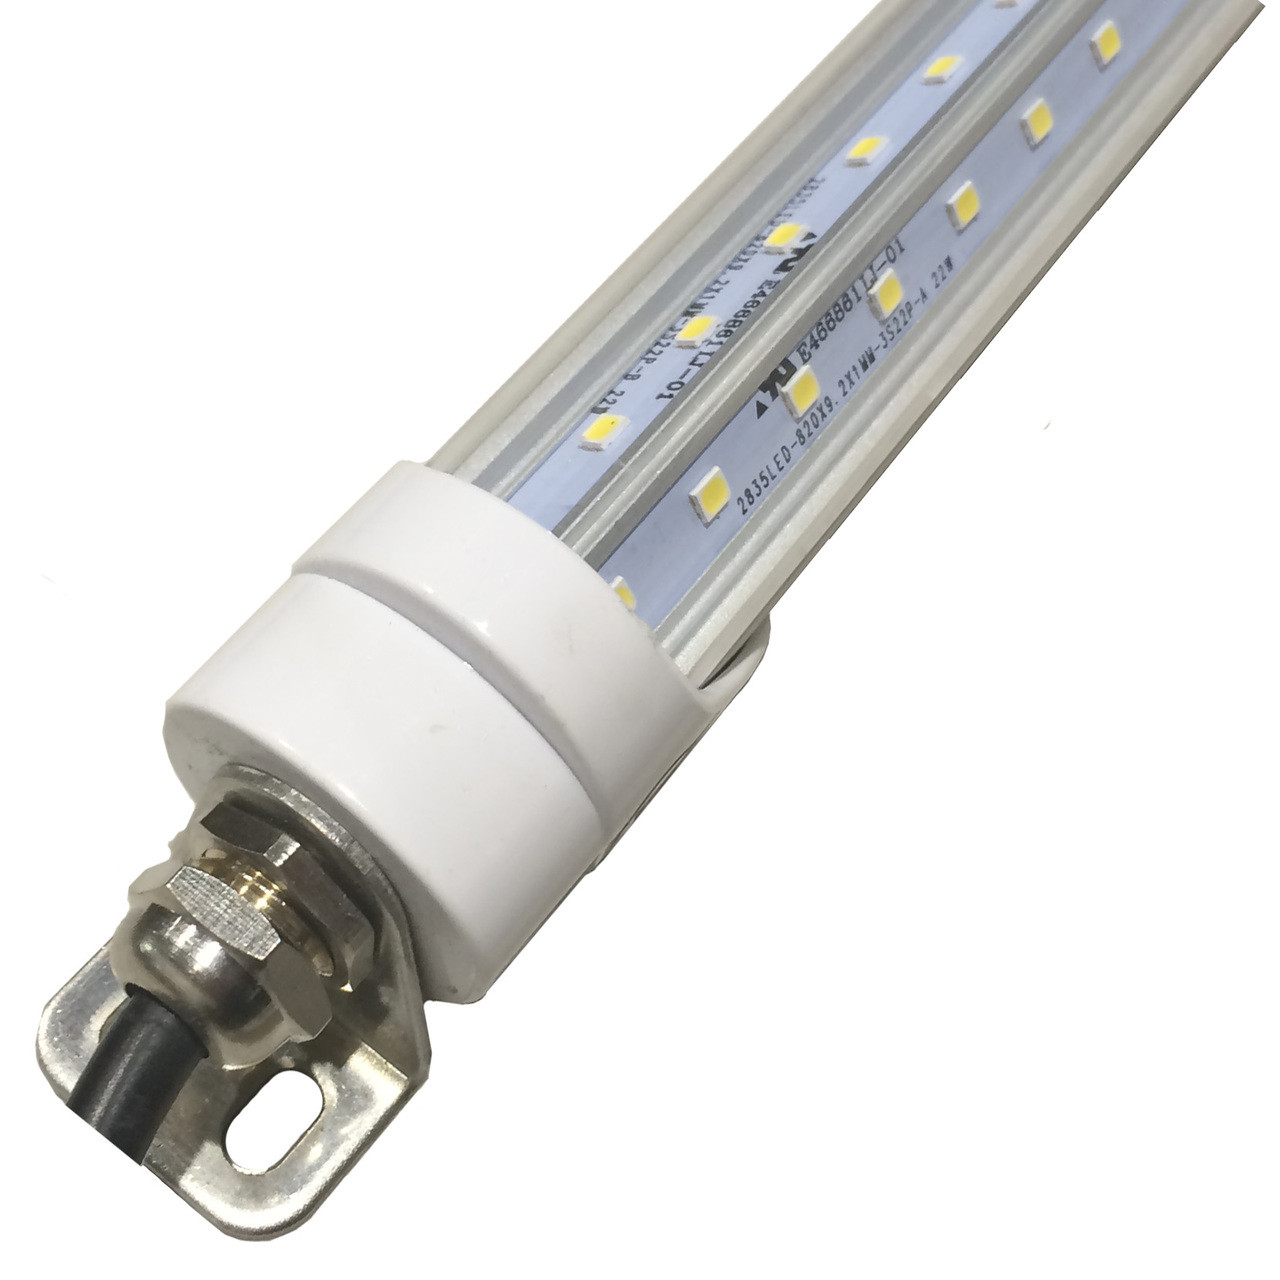 ??led T8 Led Five Foot Freezer Cooler Tube Replace Your Fluorescents